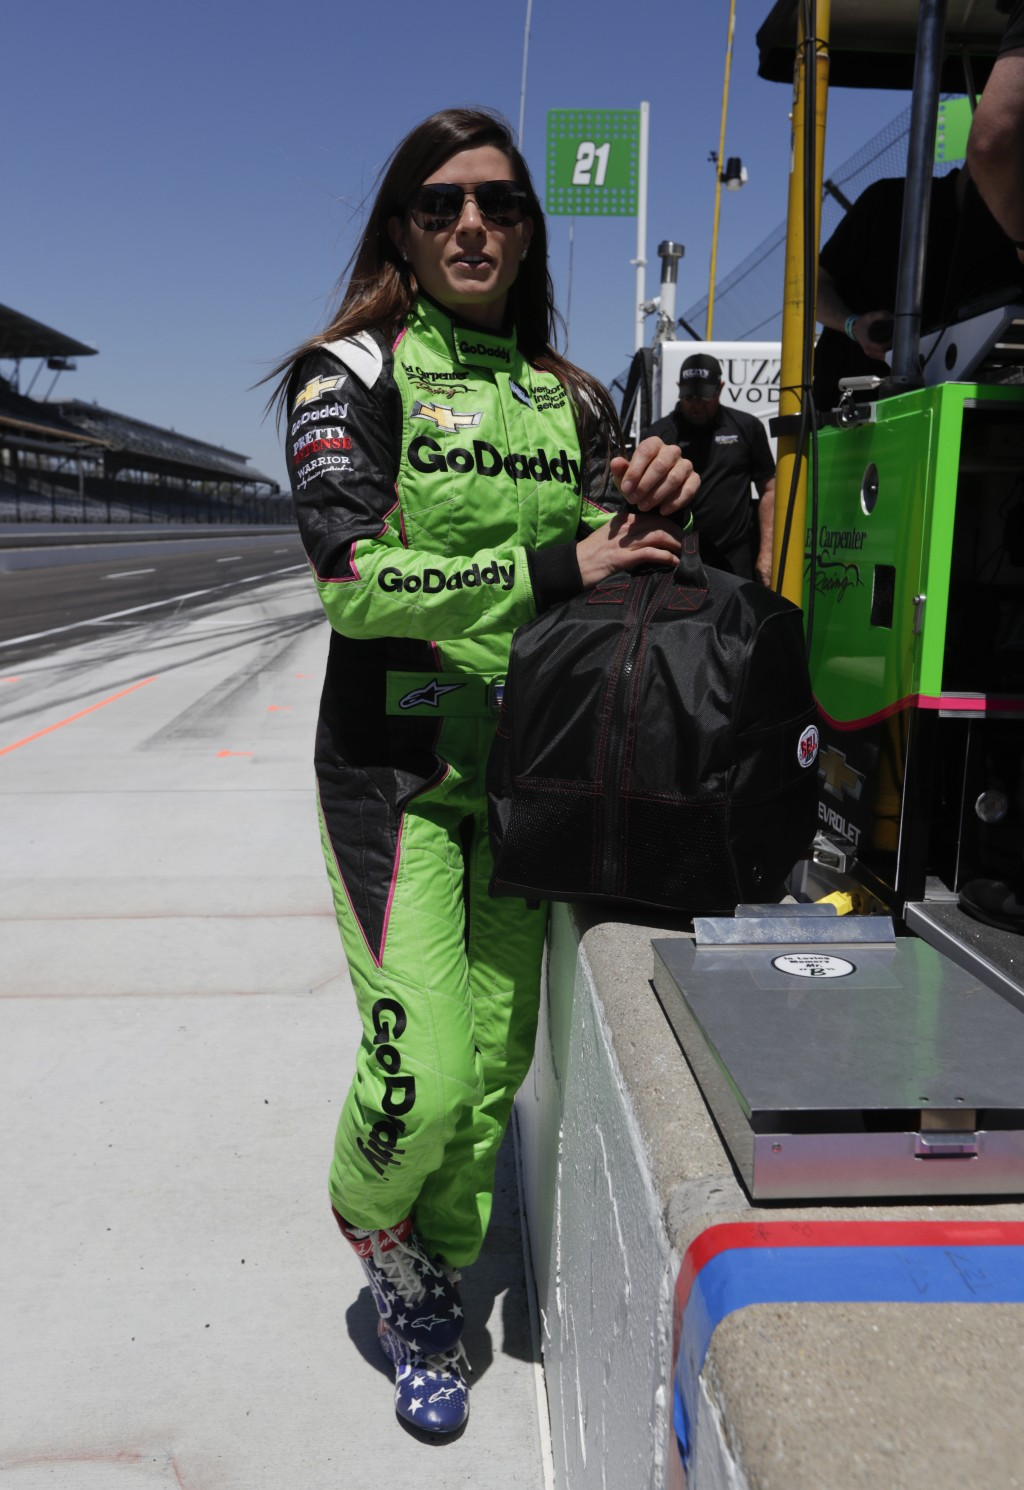 IndyCar driver Danica Patrick waits to drive at Indianapolis Motor Speedway in Indianapolis, Tuesday, May 1, 2018. (AP Photo/Michael Conroy)